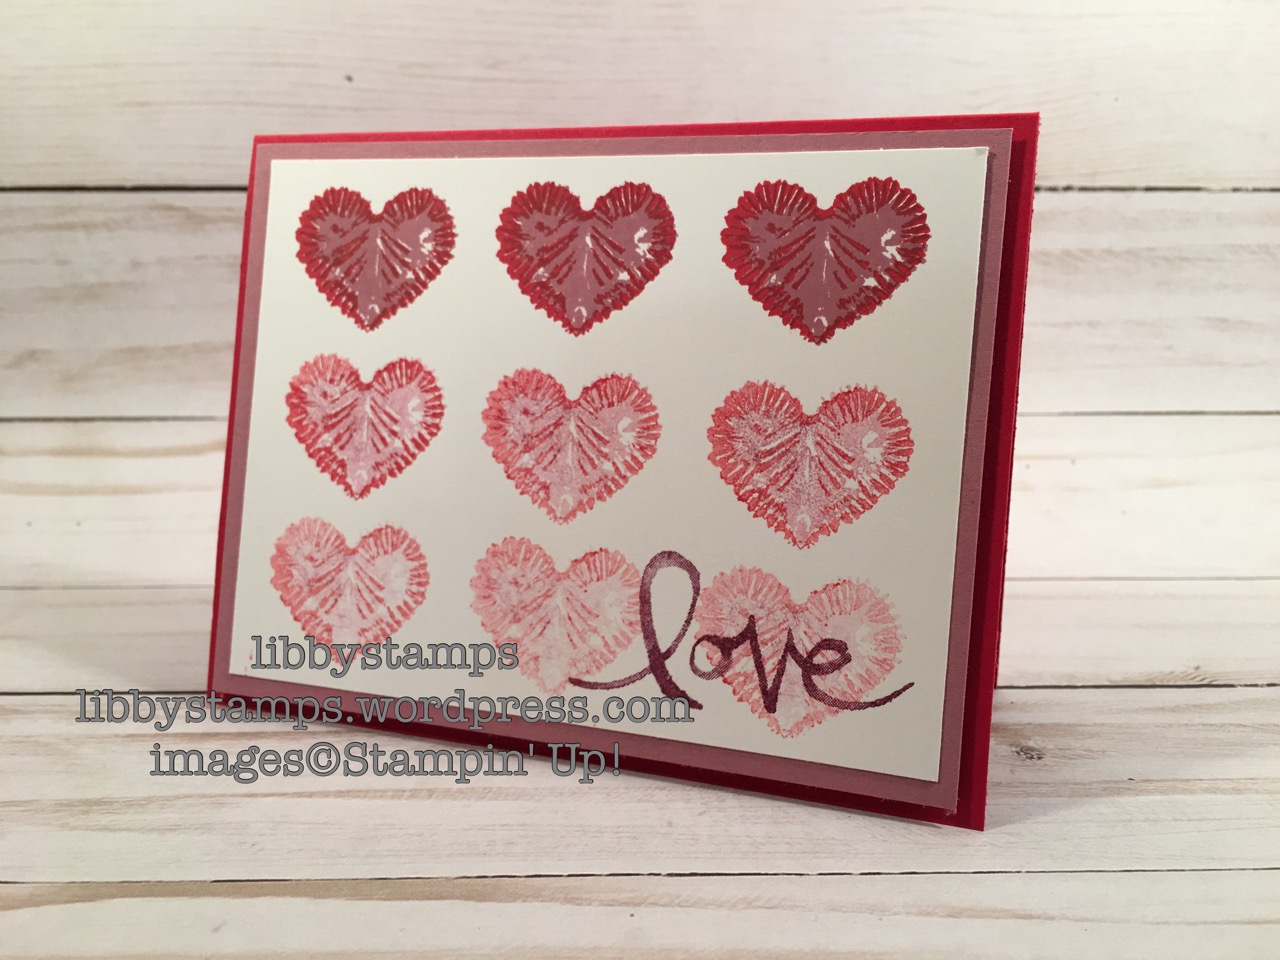 libbystamps, stampin up, Tie Dyed, Watercolor Words, Card Buffet, Valentine's, Love